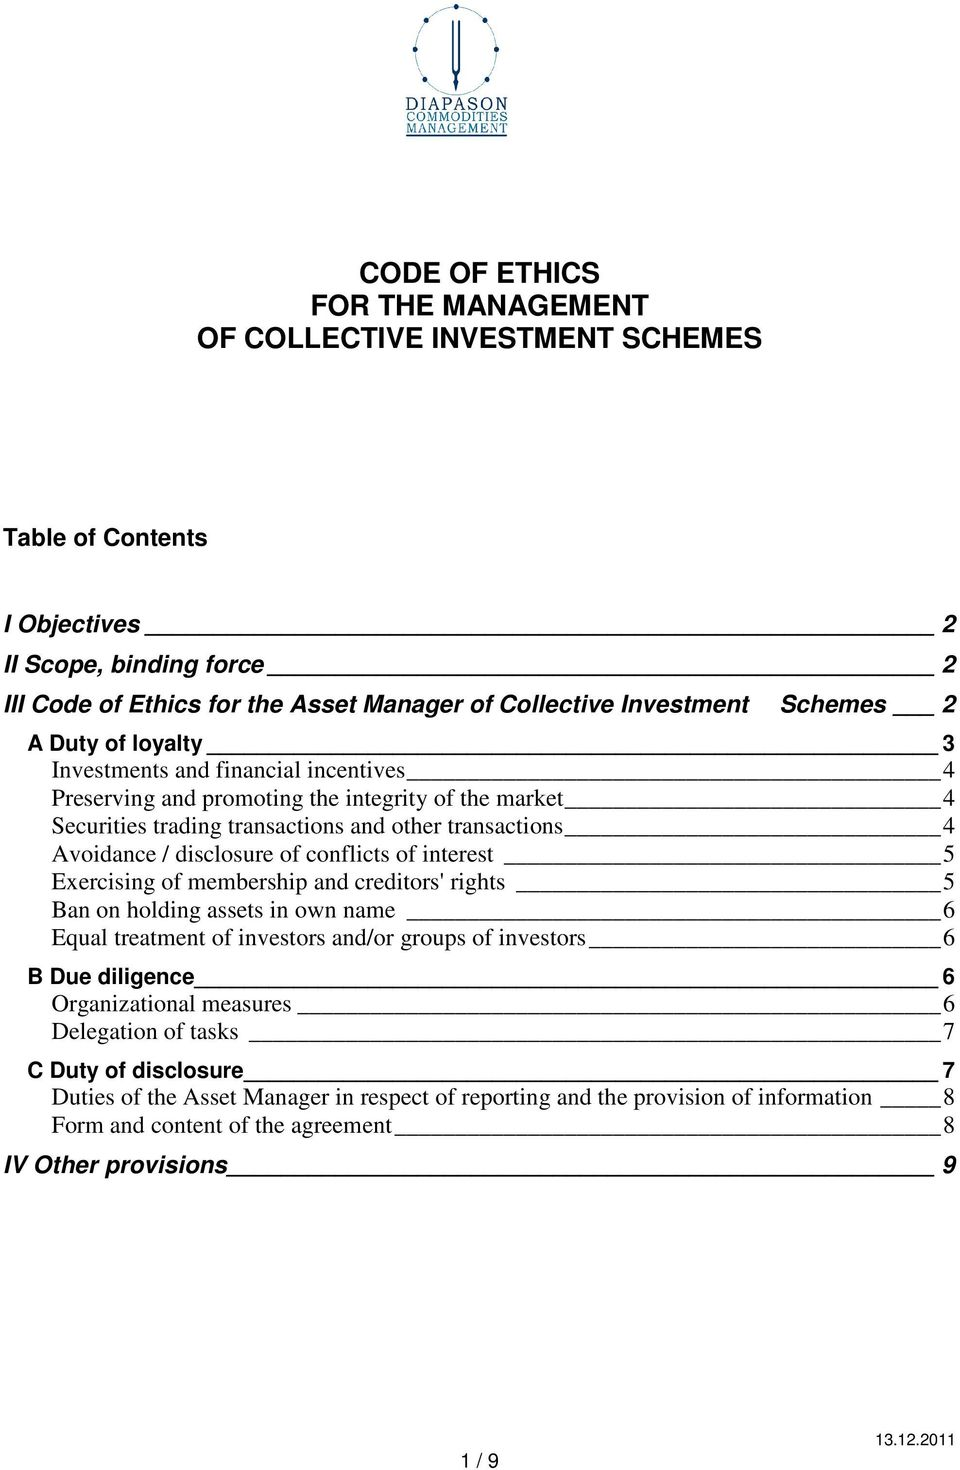 conflicts of interest 5 Exercising of membership and creditors' rights 5 Ban on holding assets in own name 6 Equal treatment of investors and/or groups of investors 6 B Due diligence 6 Organizational